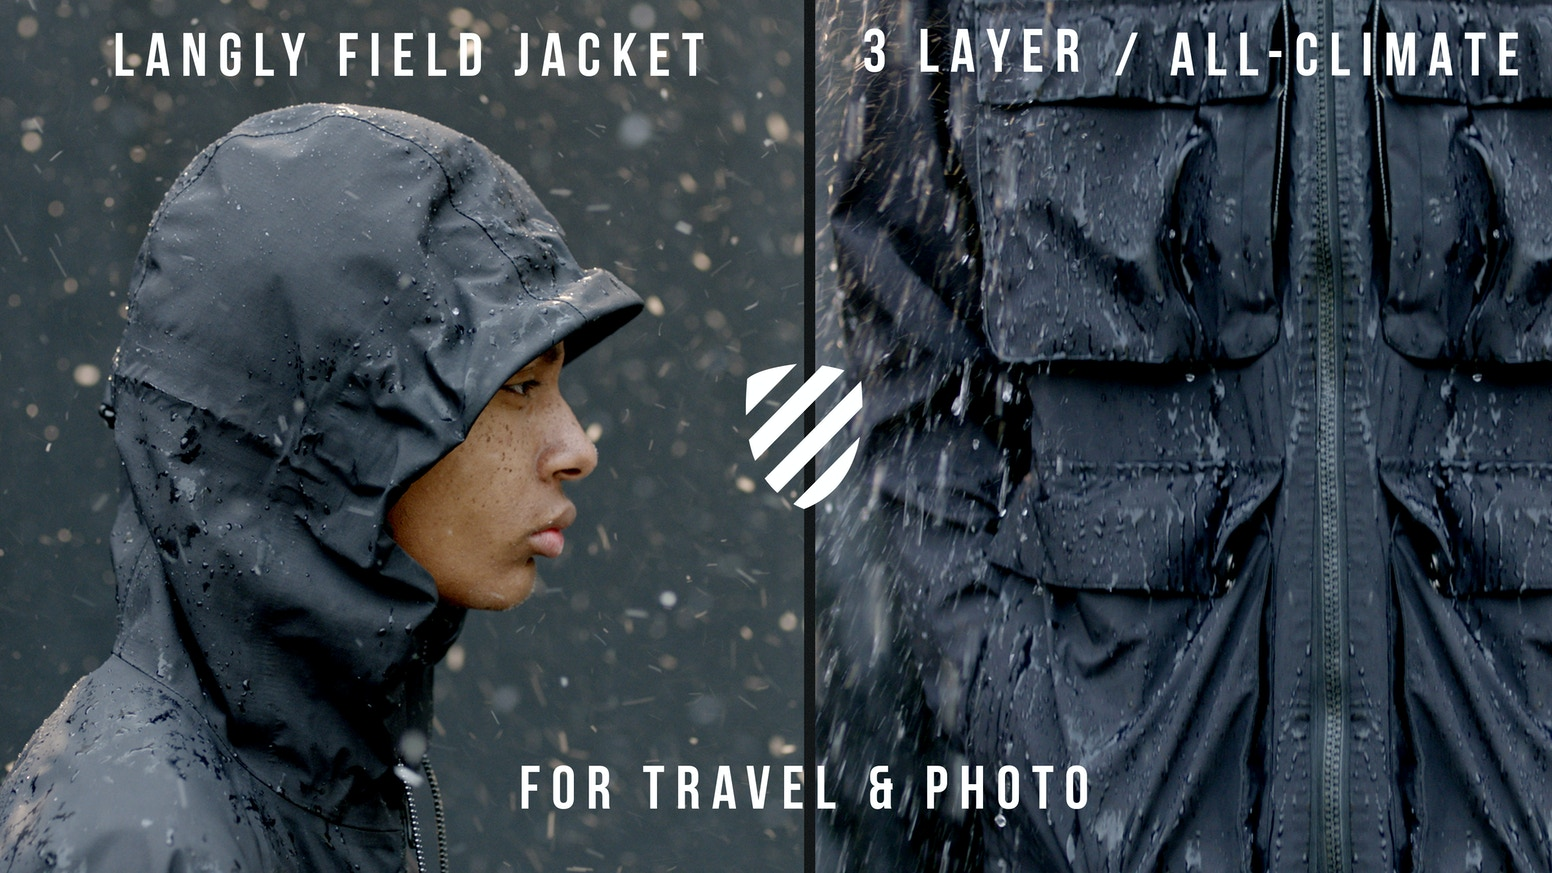 LANGLY FIELD JACKET, the world's most Versatile 3-Layer weather-proof jacket. Complete protection from RAIN, WIND and SNOW.